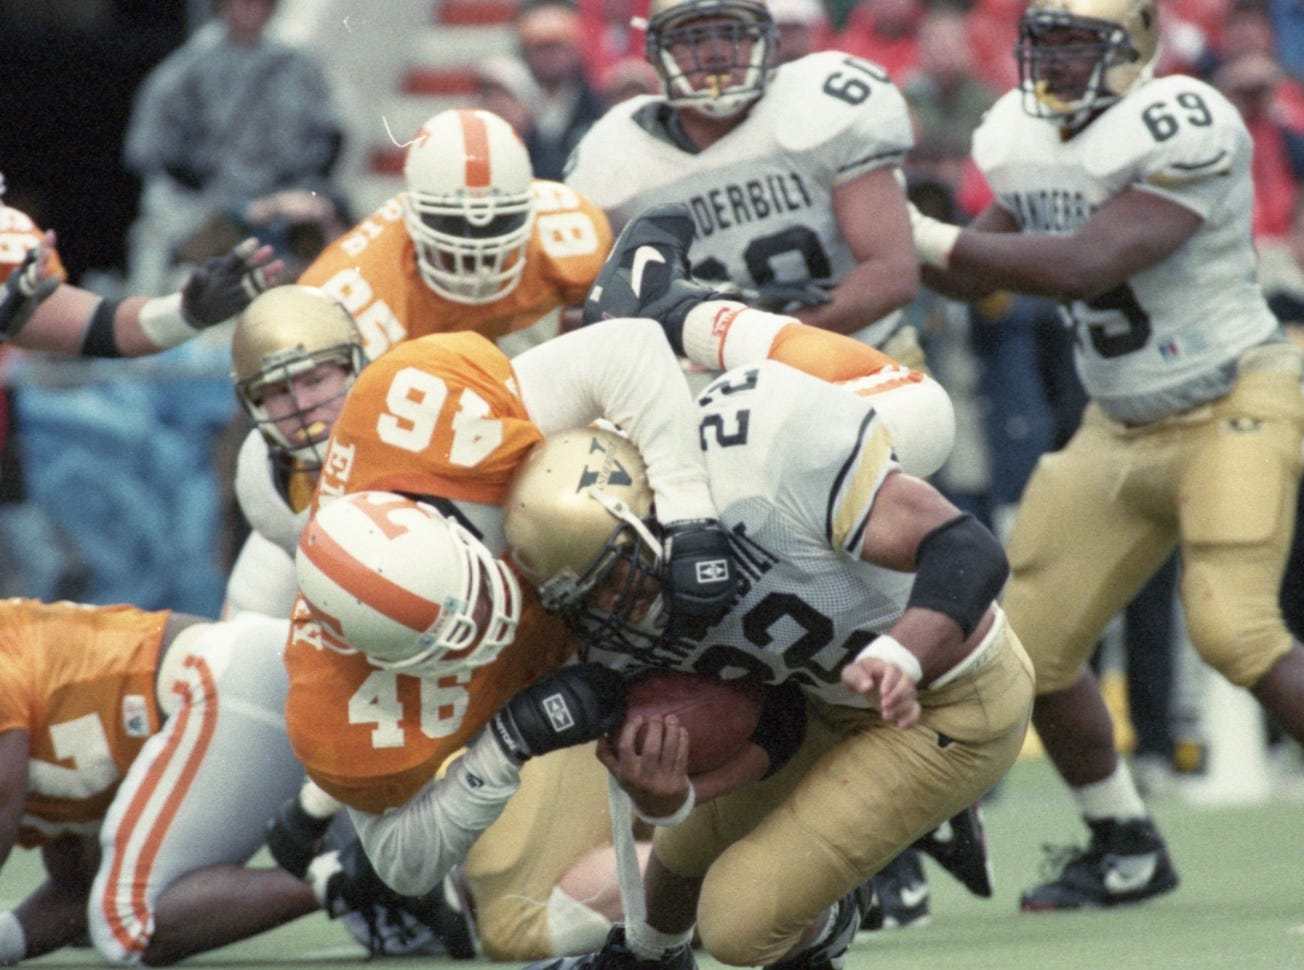 Tennessee's John Emery (46) takes down Vanderbilt's Eric Lewis (22) on November 27, 1993.